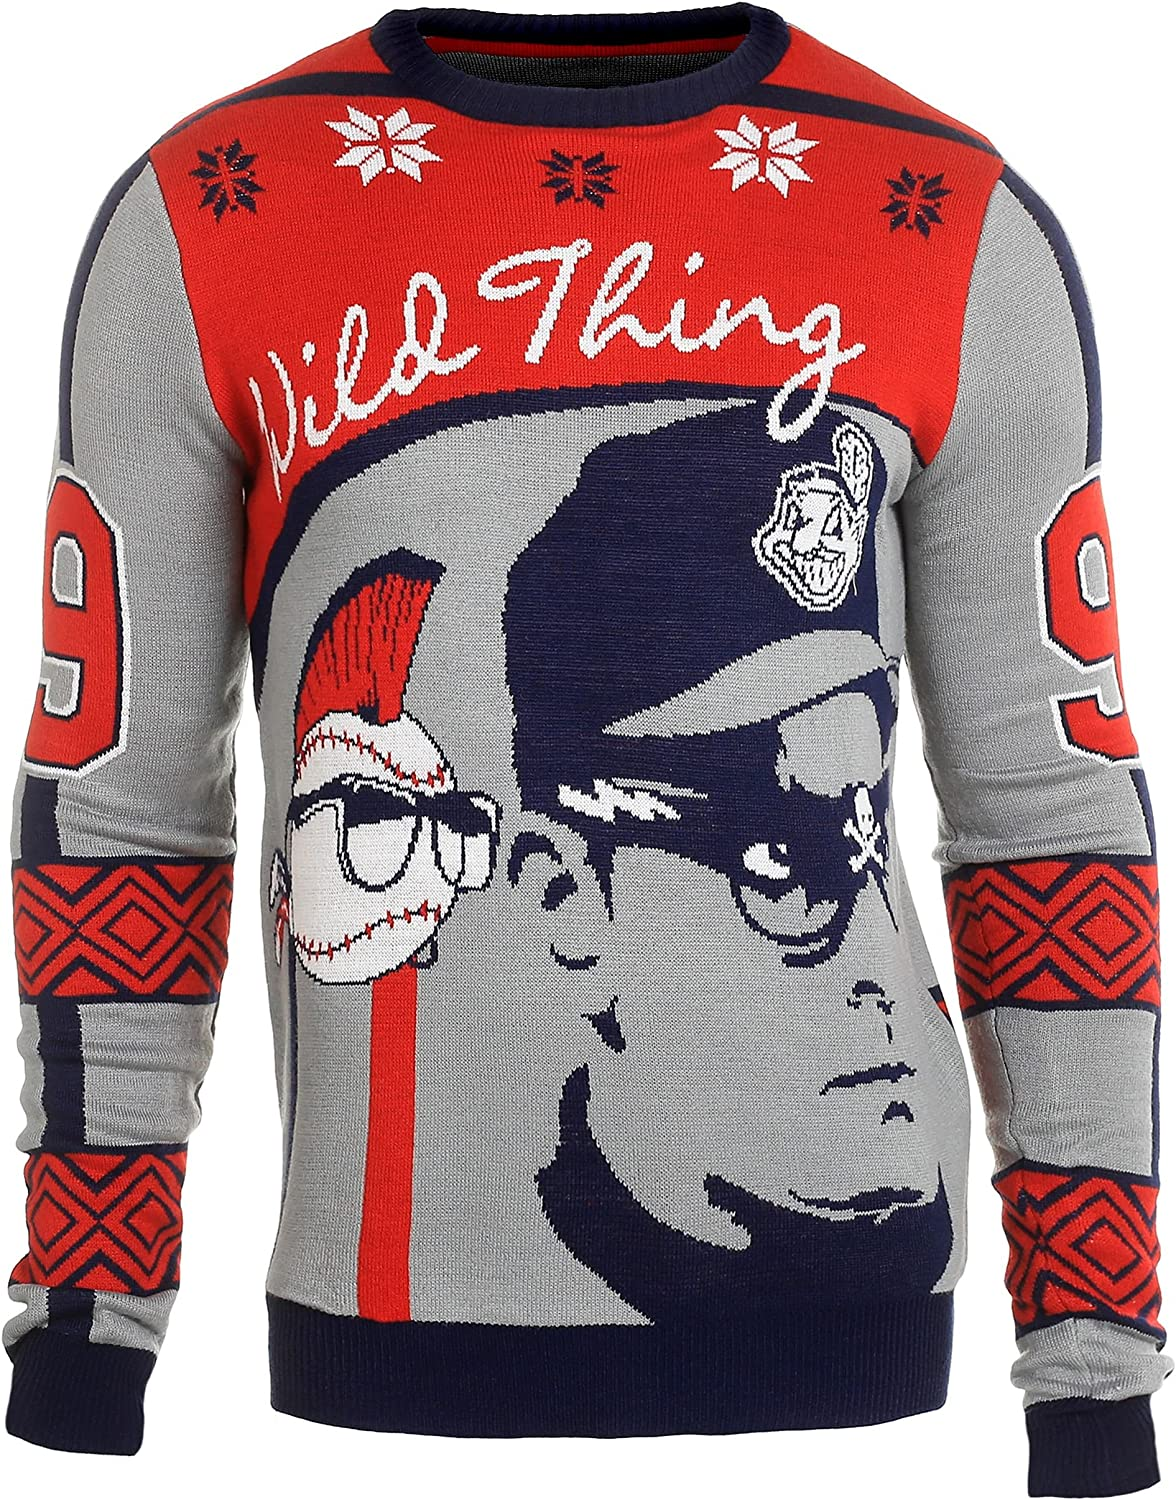 MAJOR LEAGUE EXCLUSIVE 2015 UGLY SWEATER RICKY VAUGHN MEDIUM